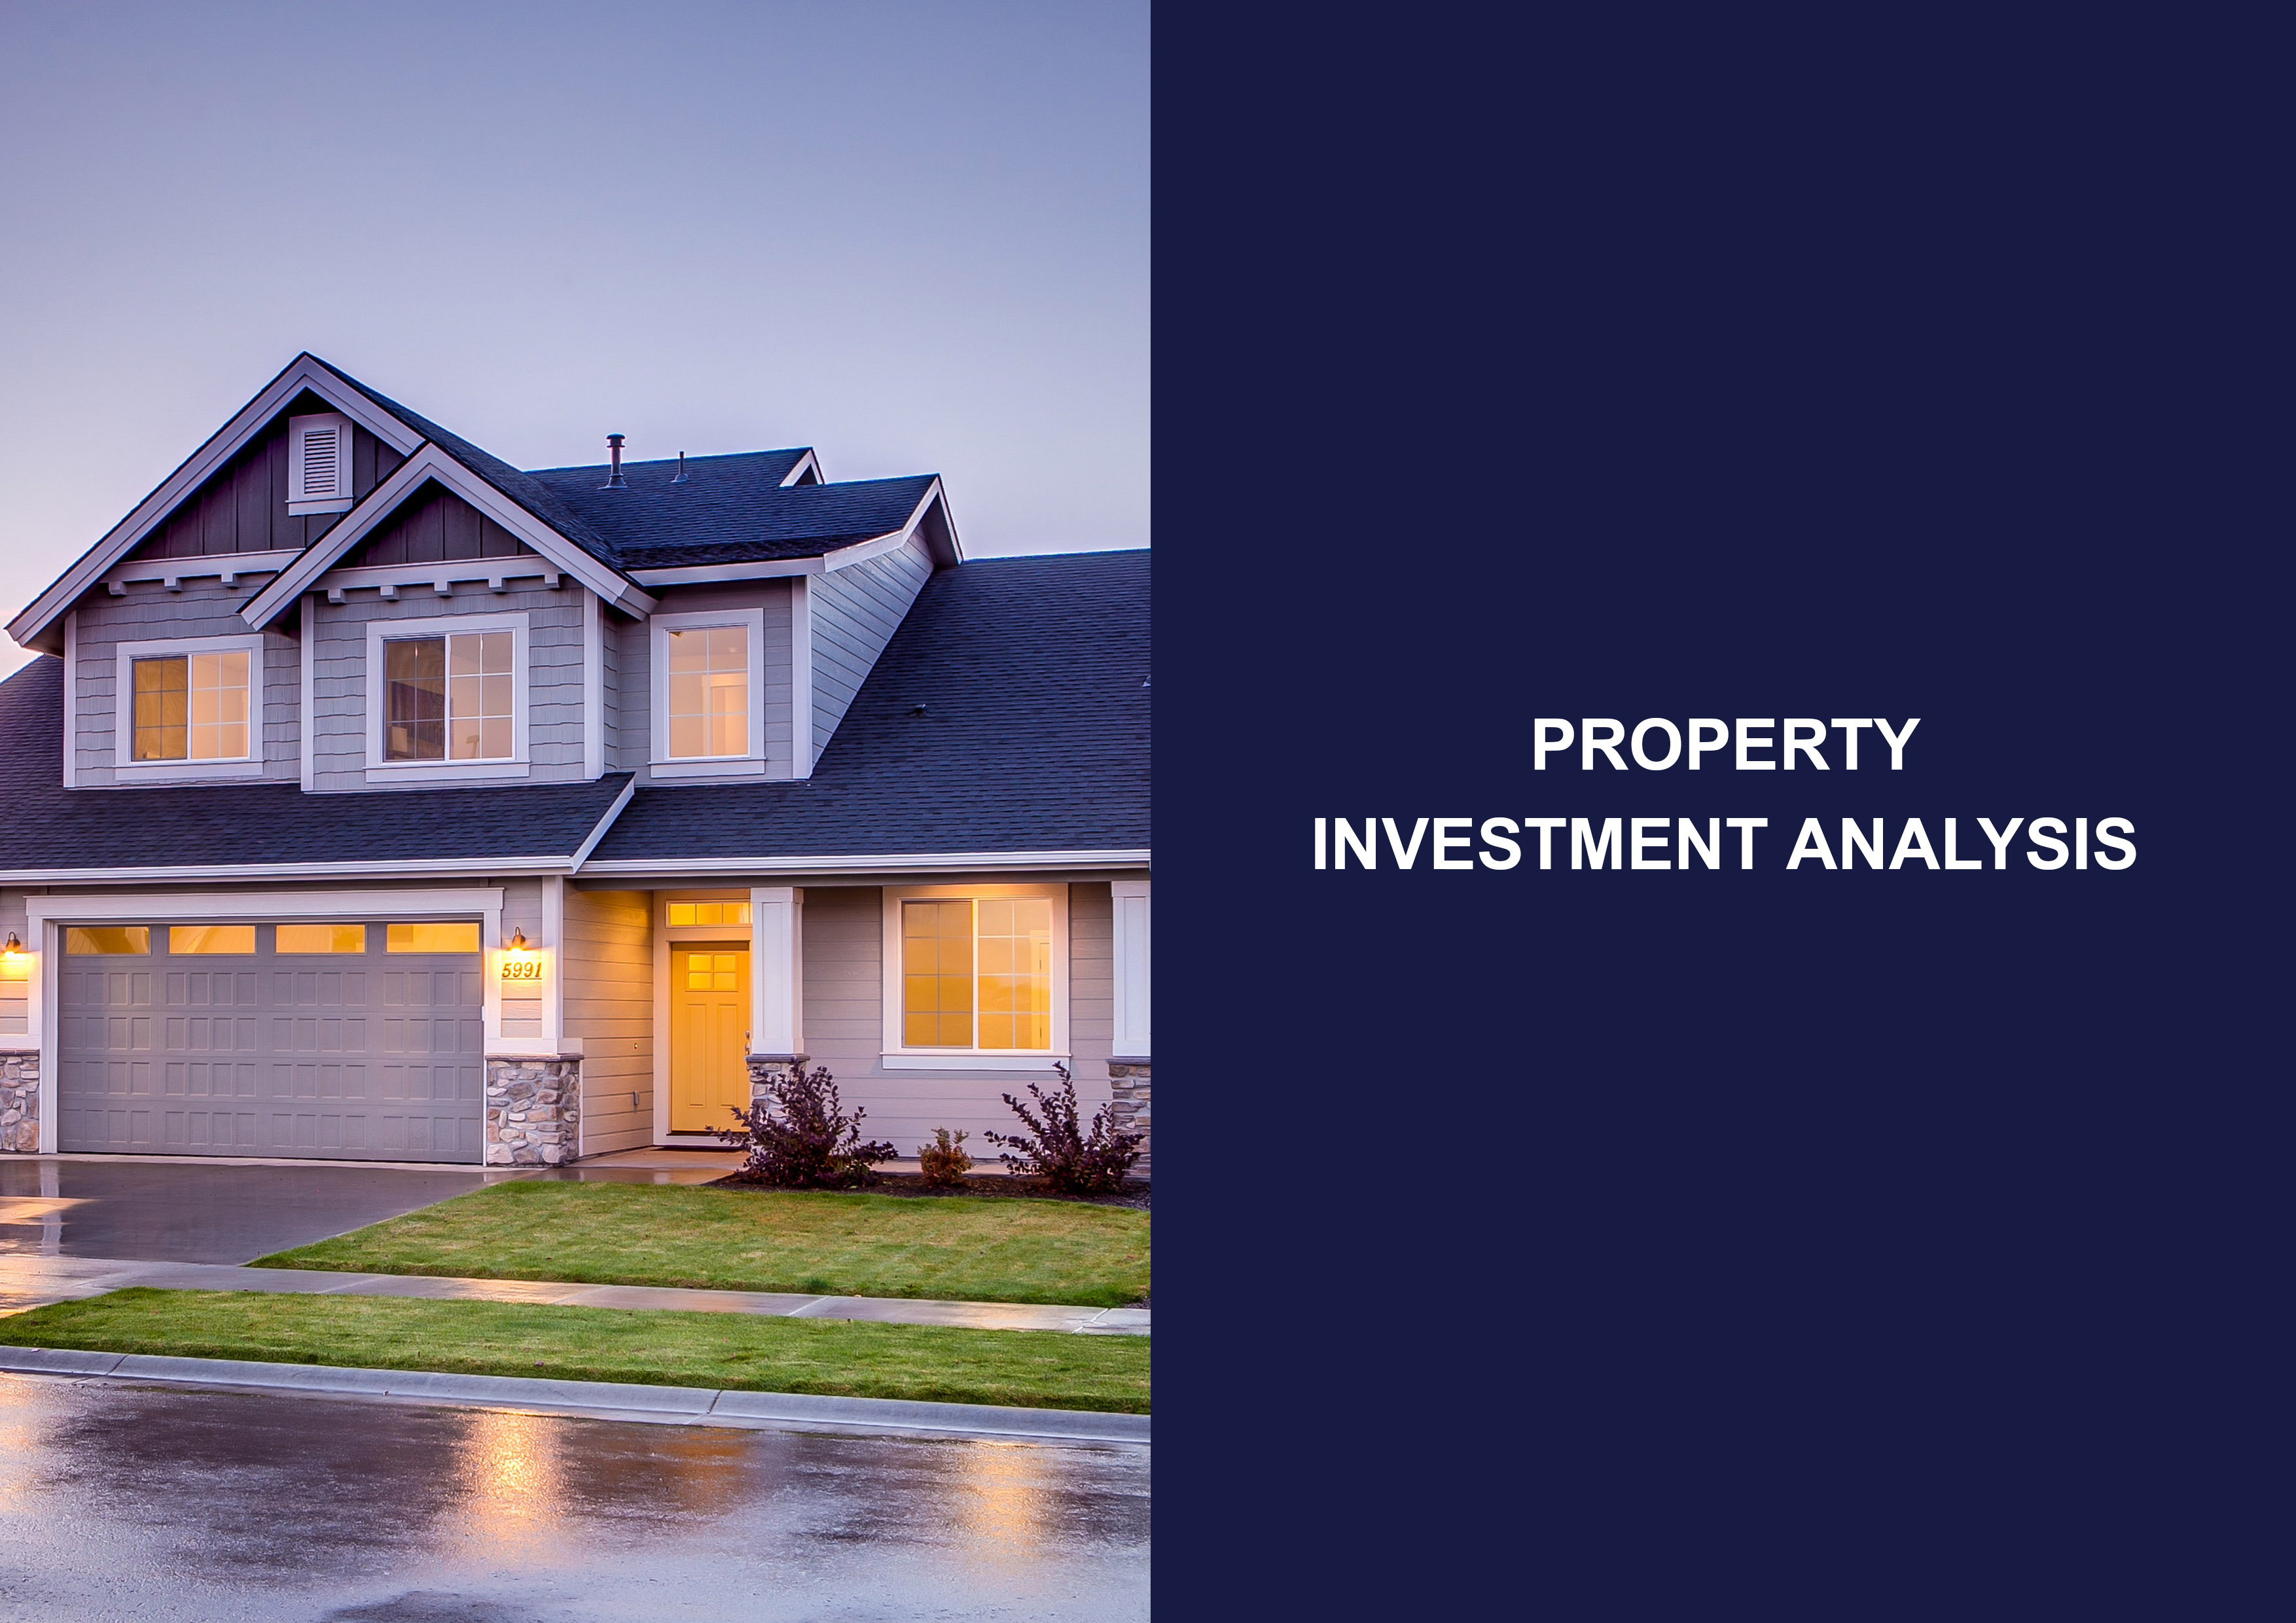 Property Investment Analysis